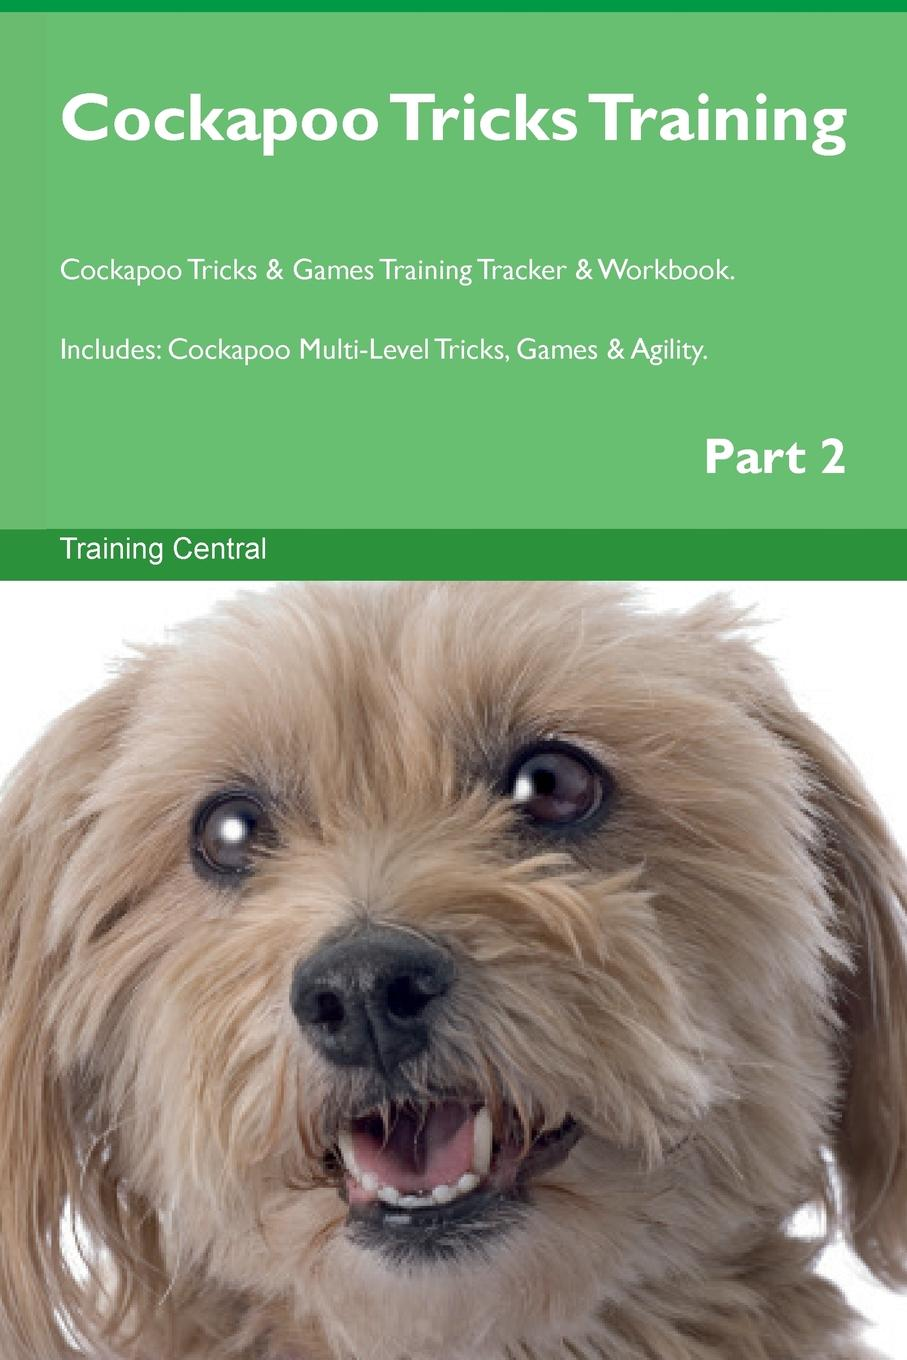 Training Central Cockapoo Tricks Training Cockapoo Tricks . Games Training Tracker . Workbook. Includes. Cockapoo Multi-Level Tricks, Games . Agility. Part 2 this book loves you